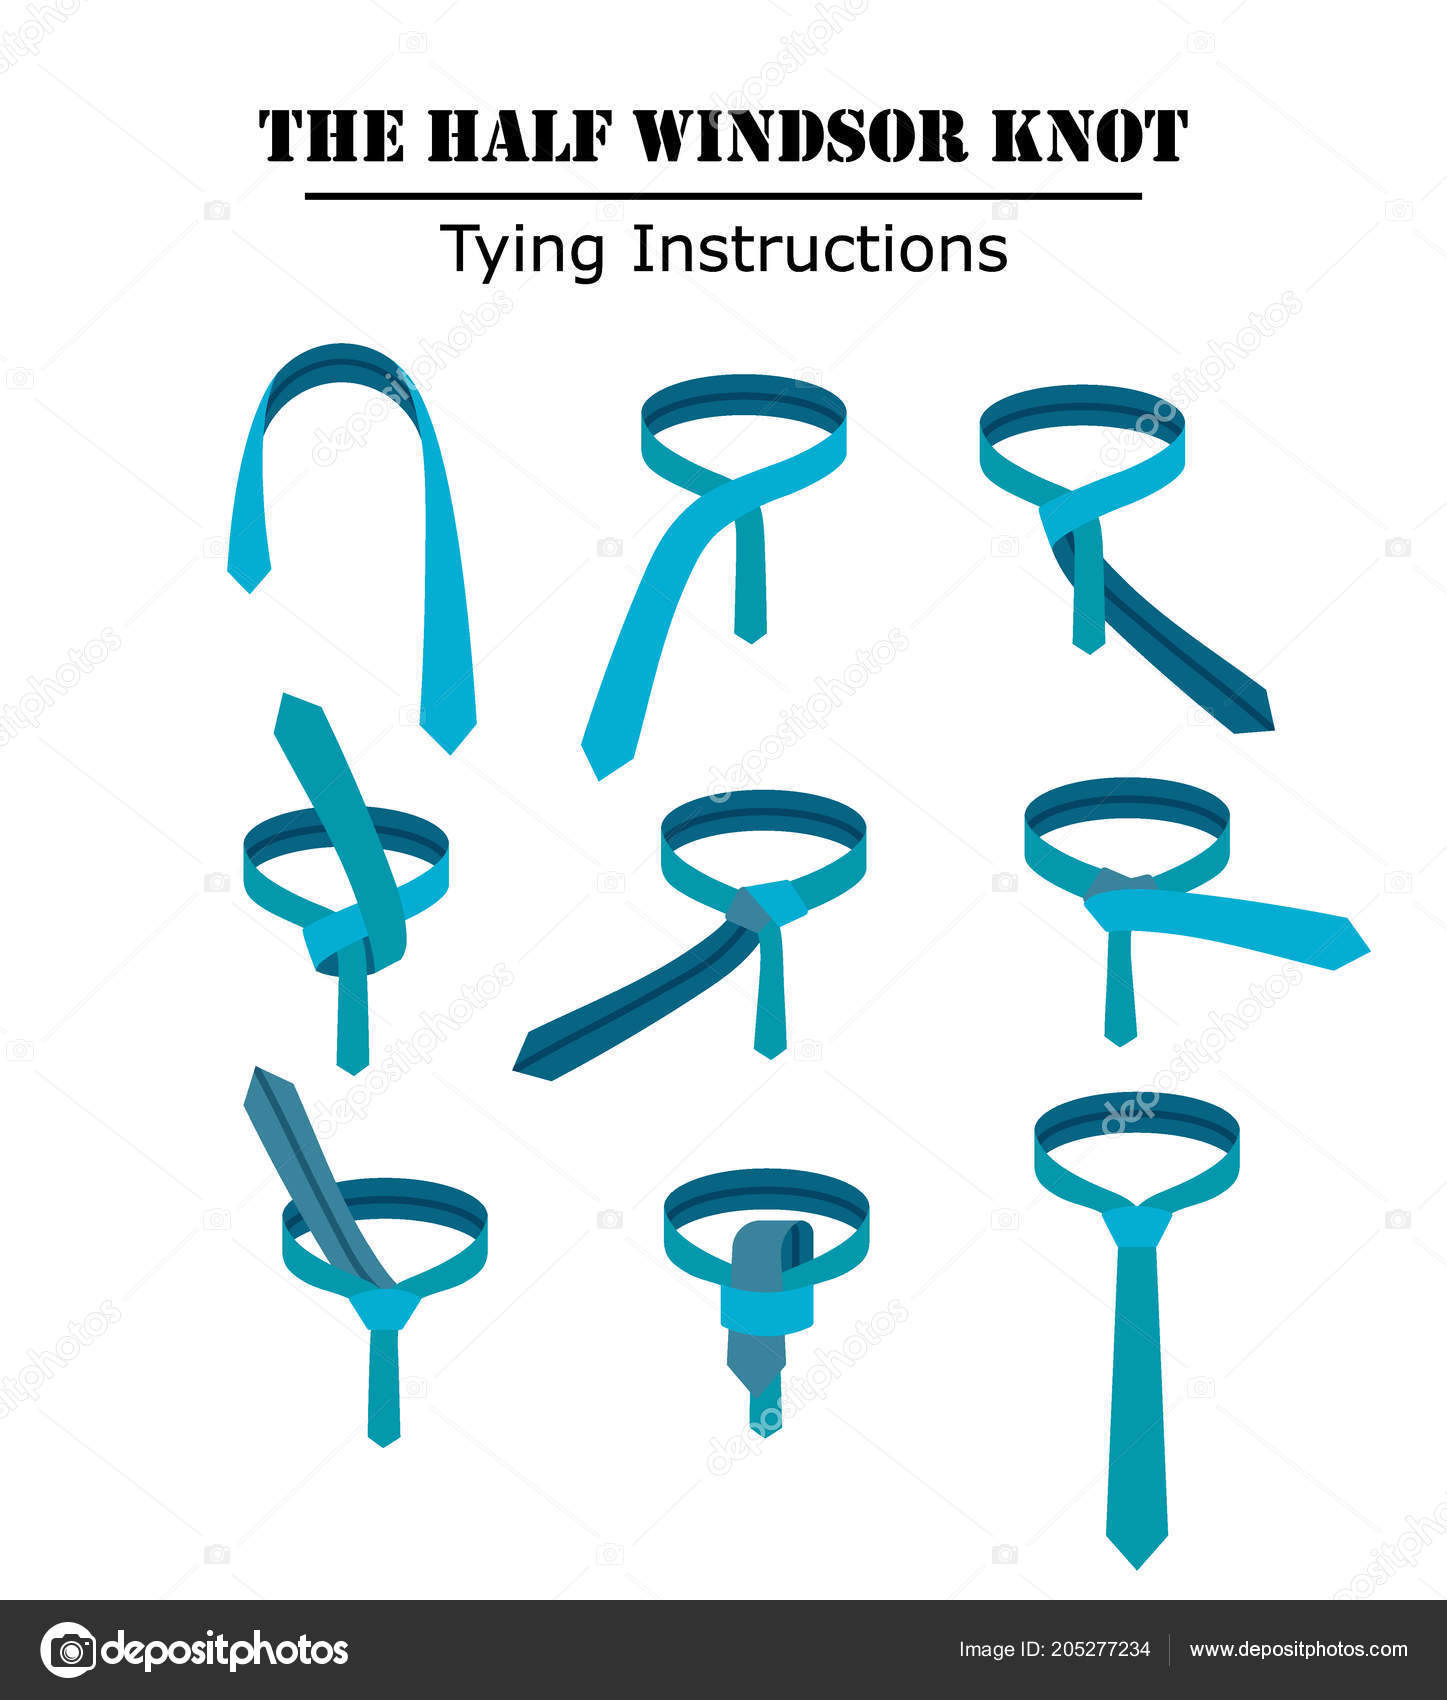 The half windsor tie knot instructions isolated on white background the half windsor tie knot instructions isolated on white background guide how to tie a ccuart Image collections